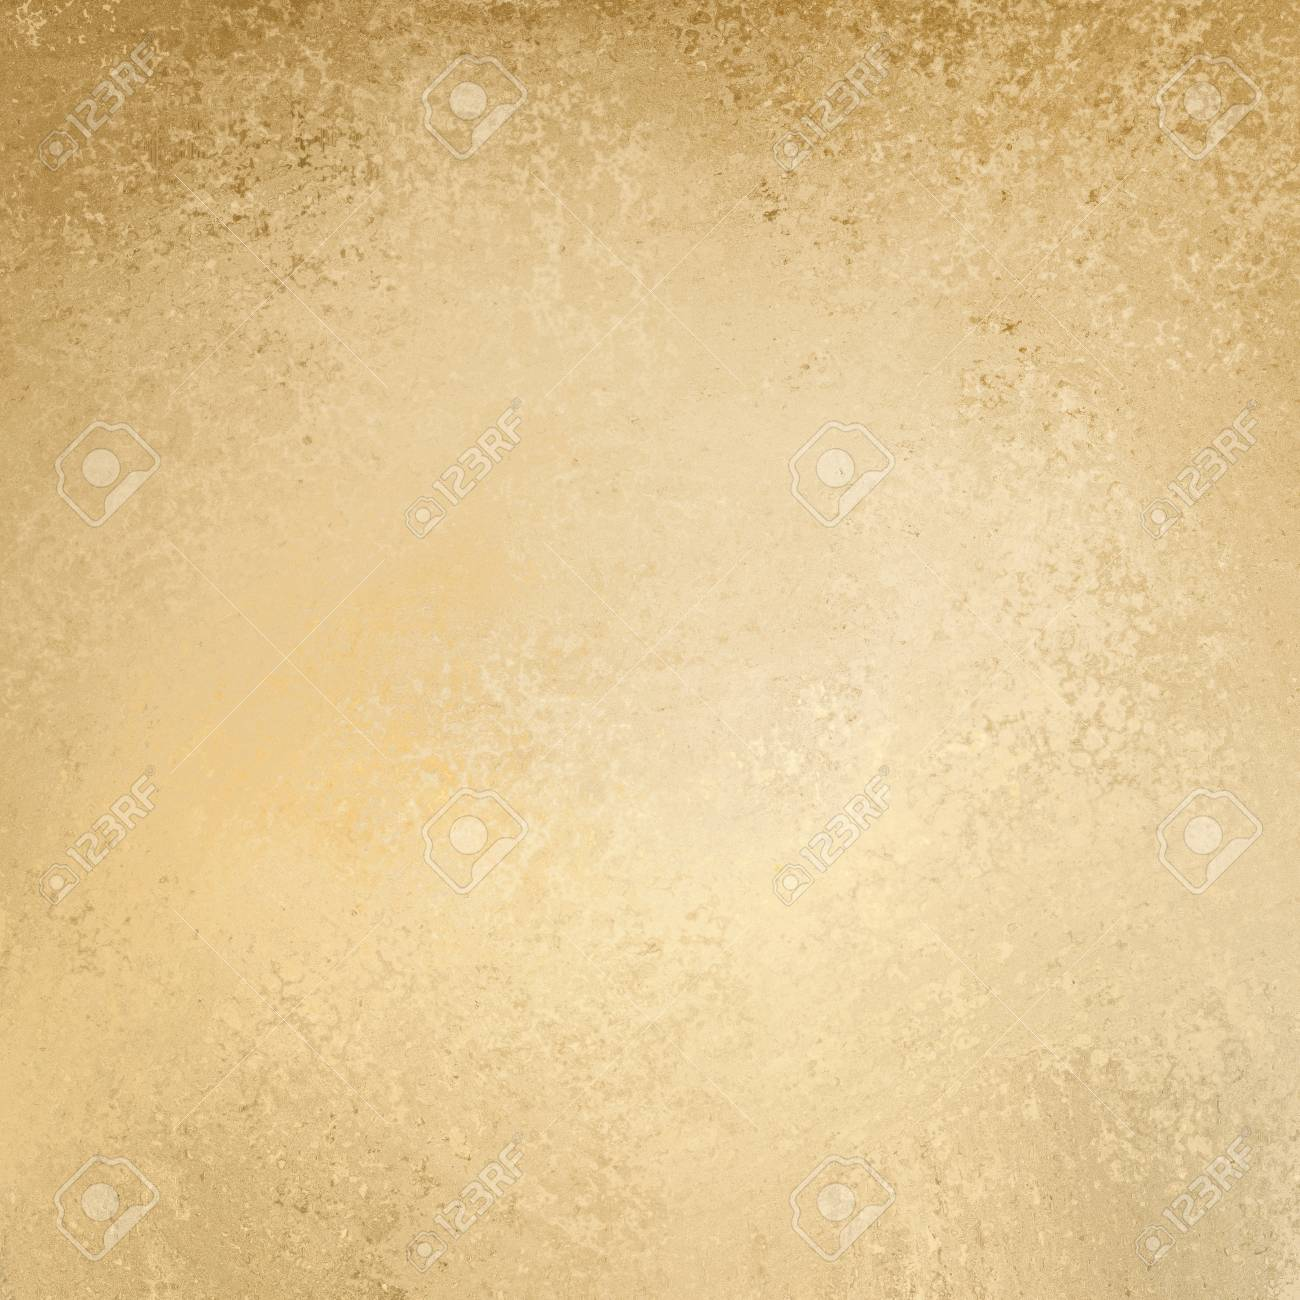 Light Brown Paper Background With Vintage Texture Stock Photo